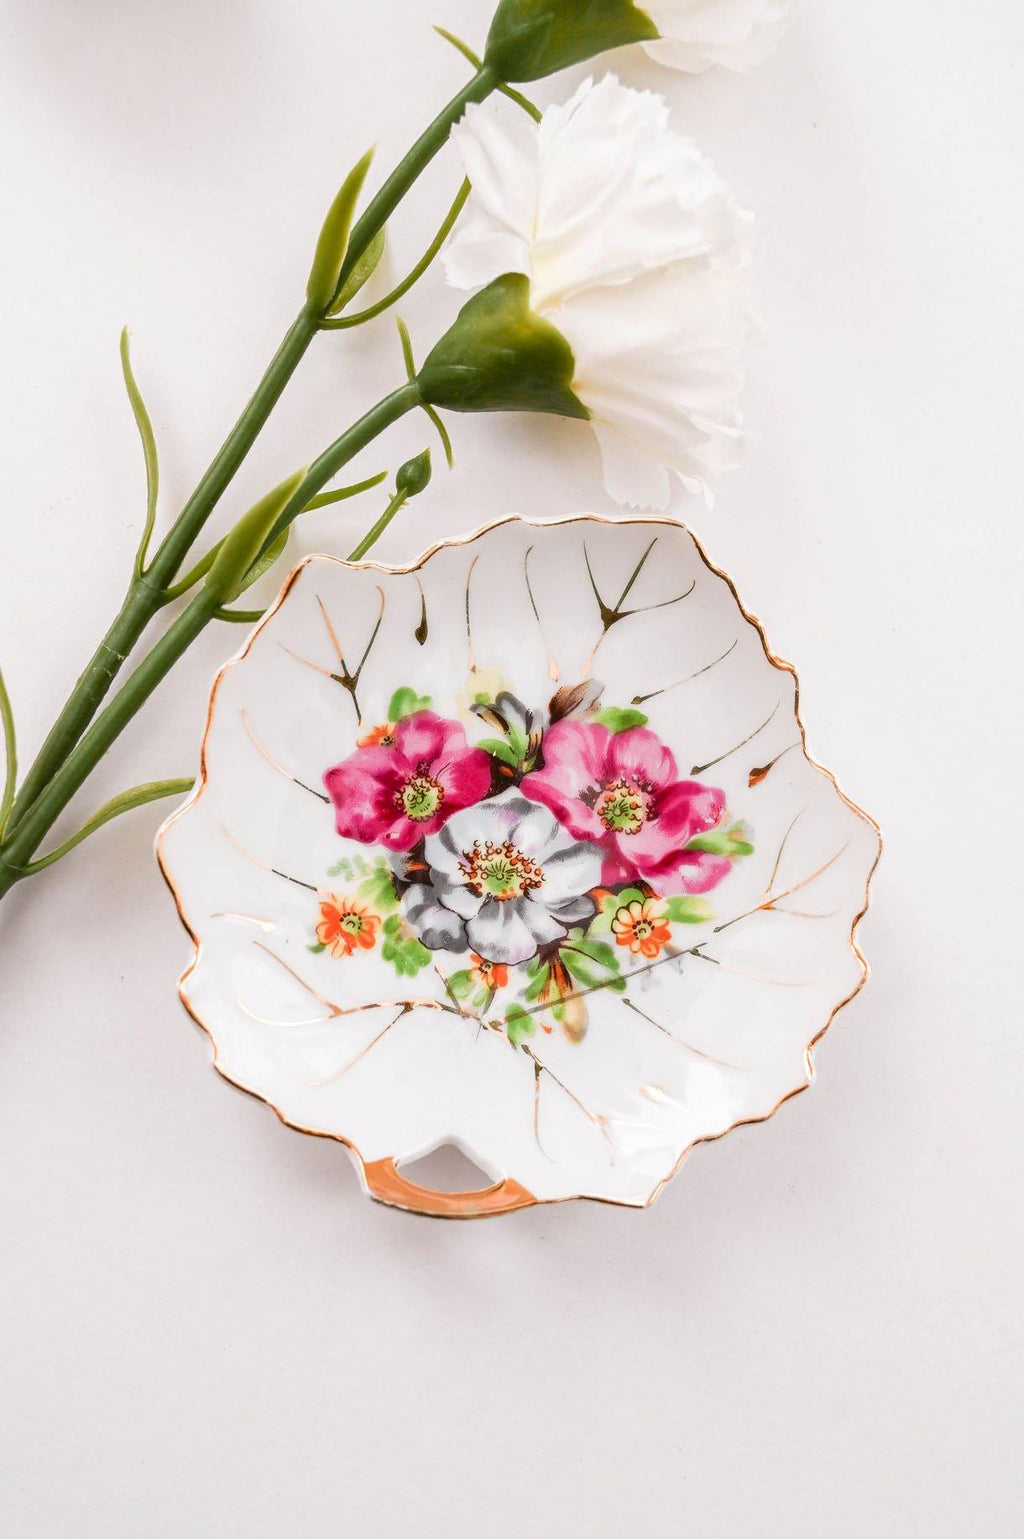 Botanical Leaf Trinket Dish